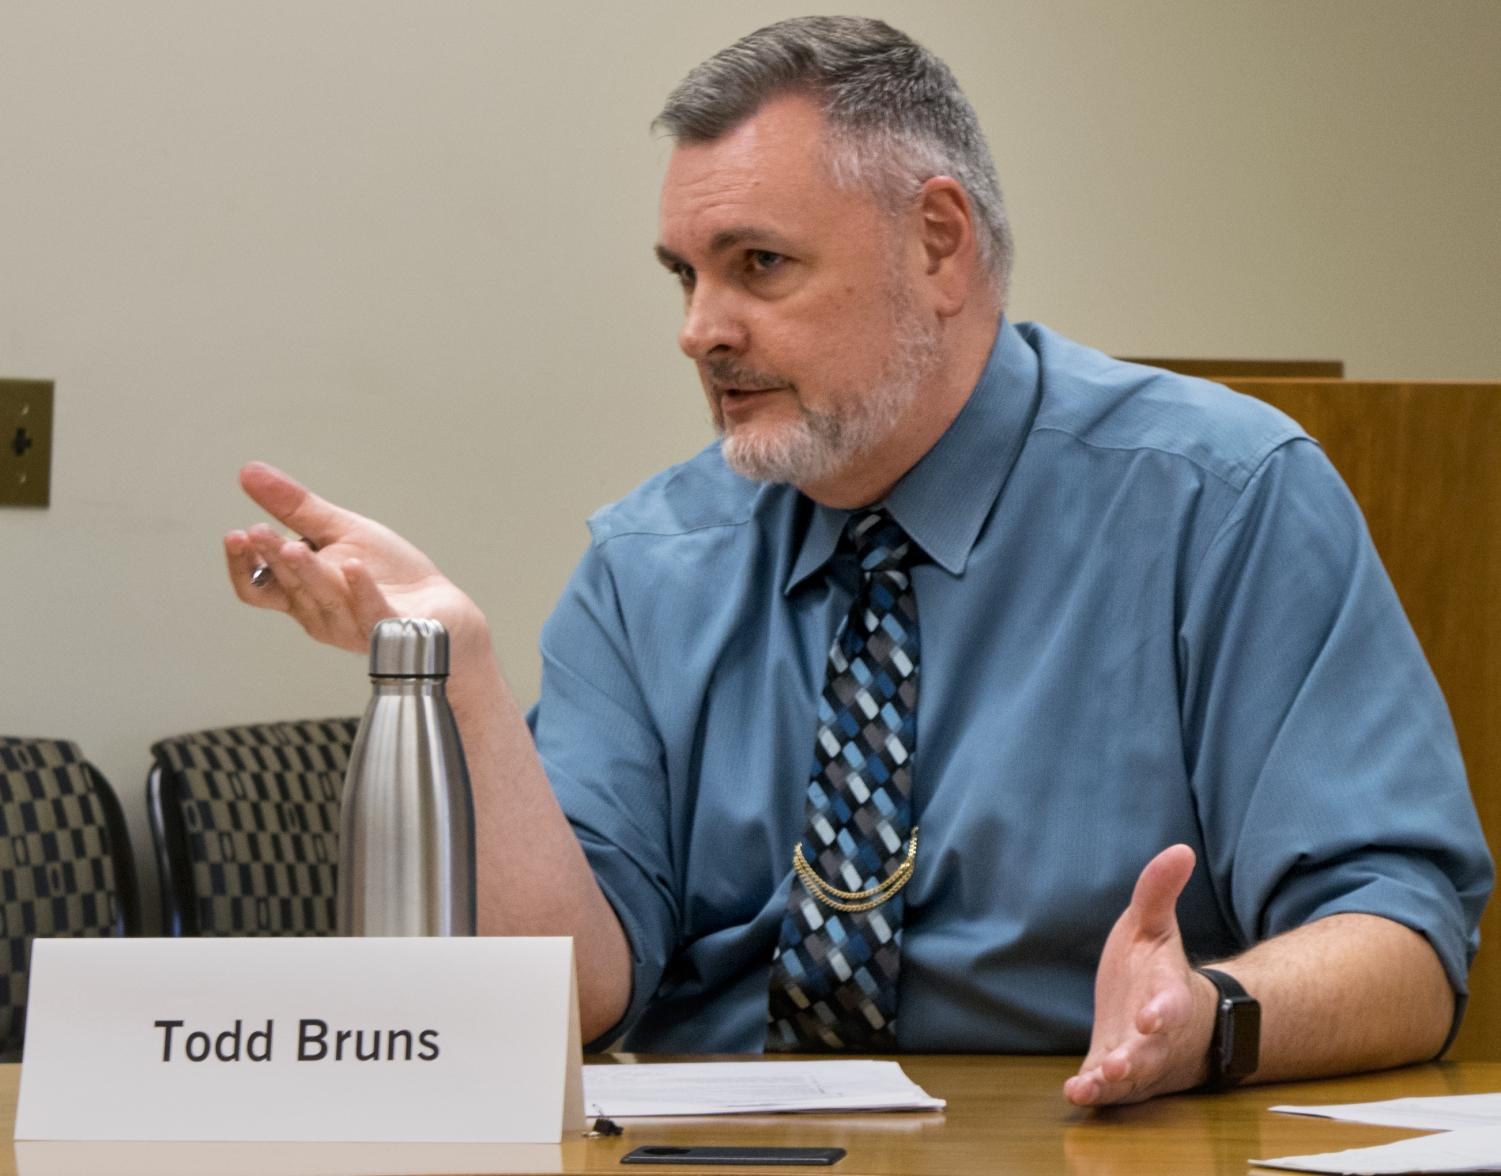 Todd Bruns is the Faculty Senate chair and the scholarly communication librarian and institutional director. The Faculty Senate met Tuesday at 2 p.m. in room 4440 of the Mary J Booth Library.